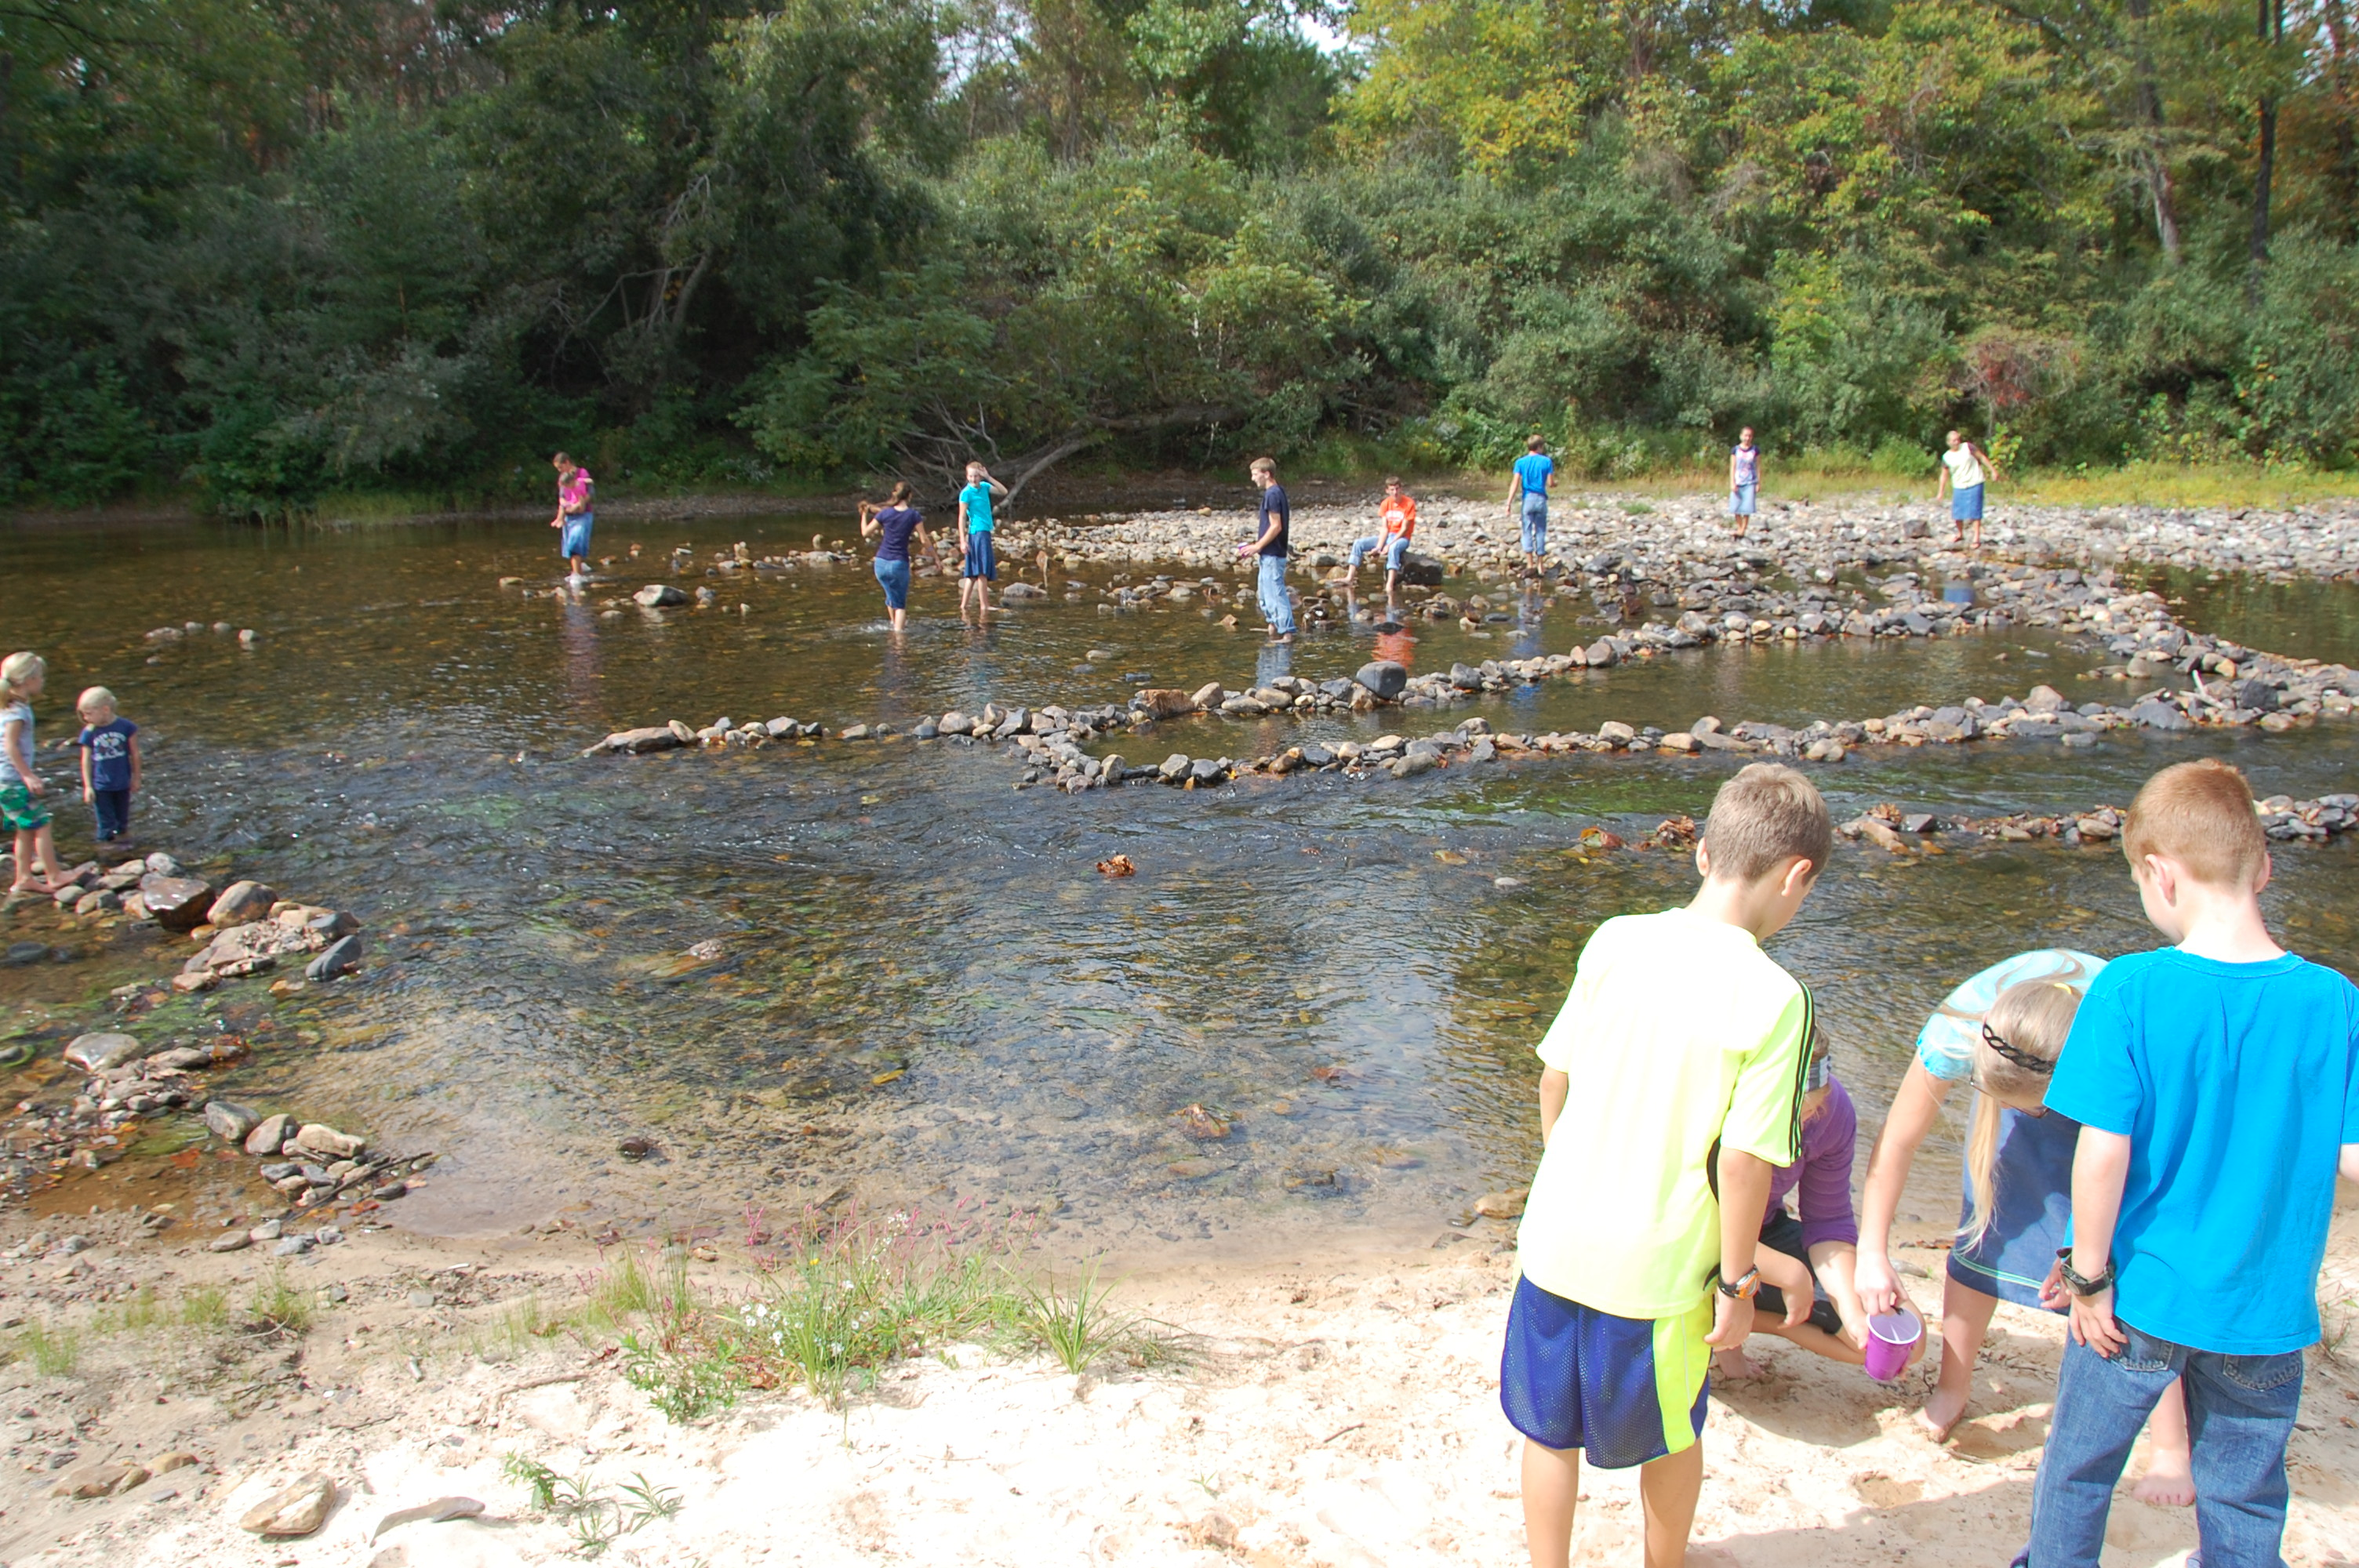 The young people were crawdad fishing in the river.